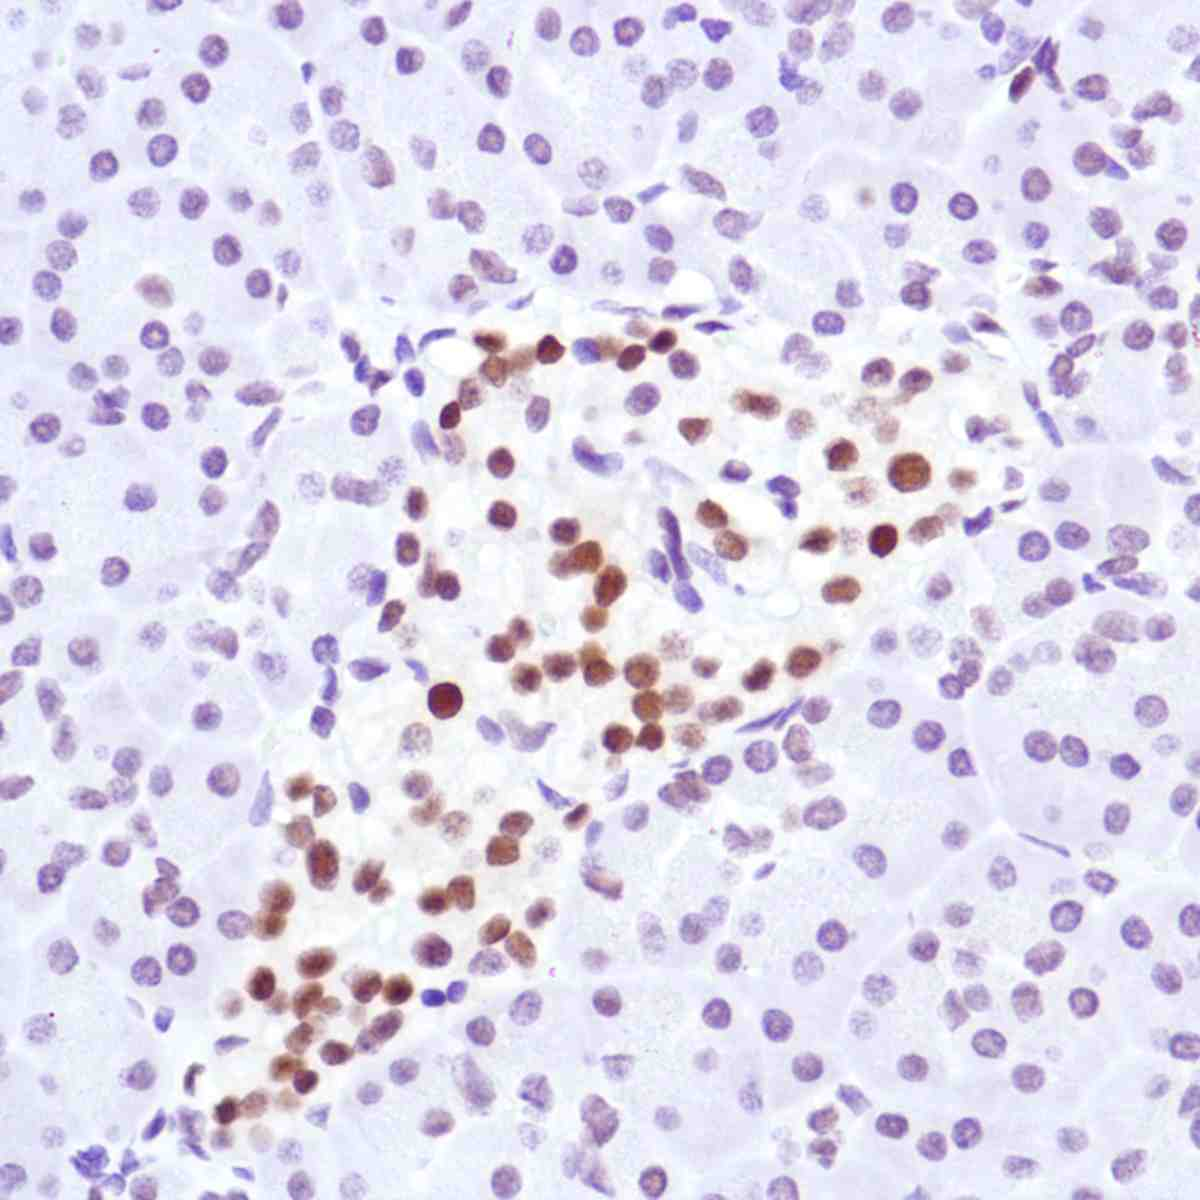 Human Pancreas stained with anti-Cyclin D3 antibody